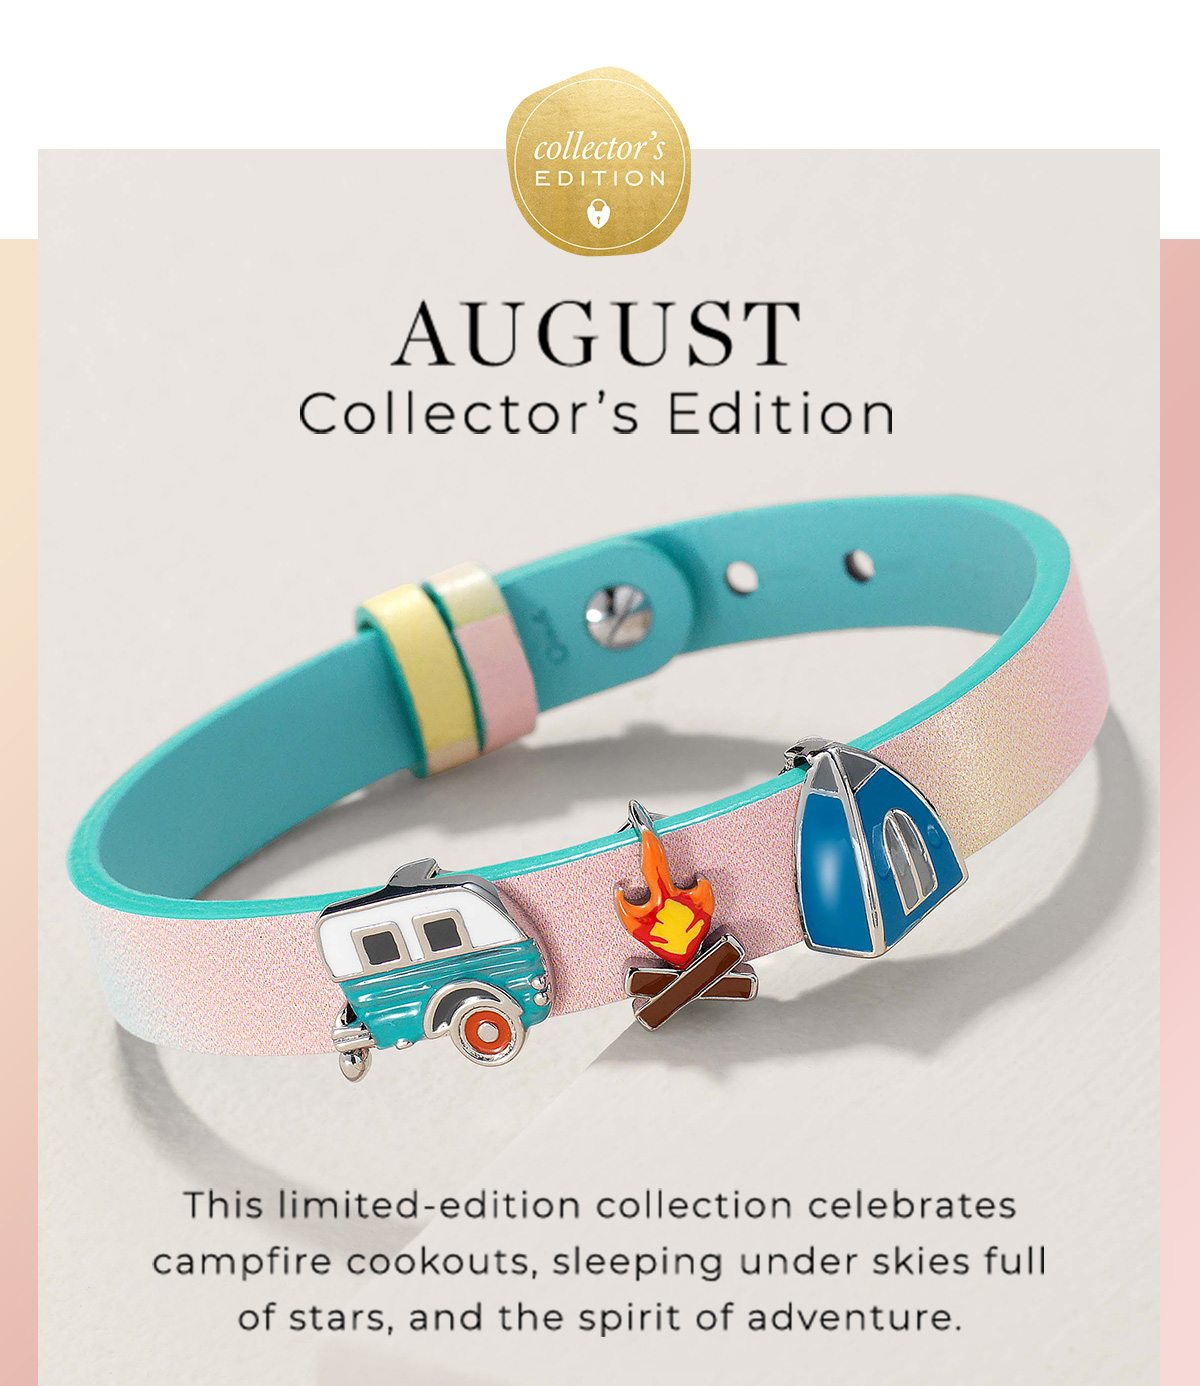 August Collector's Edition